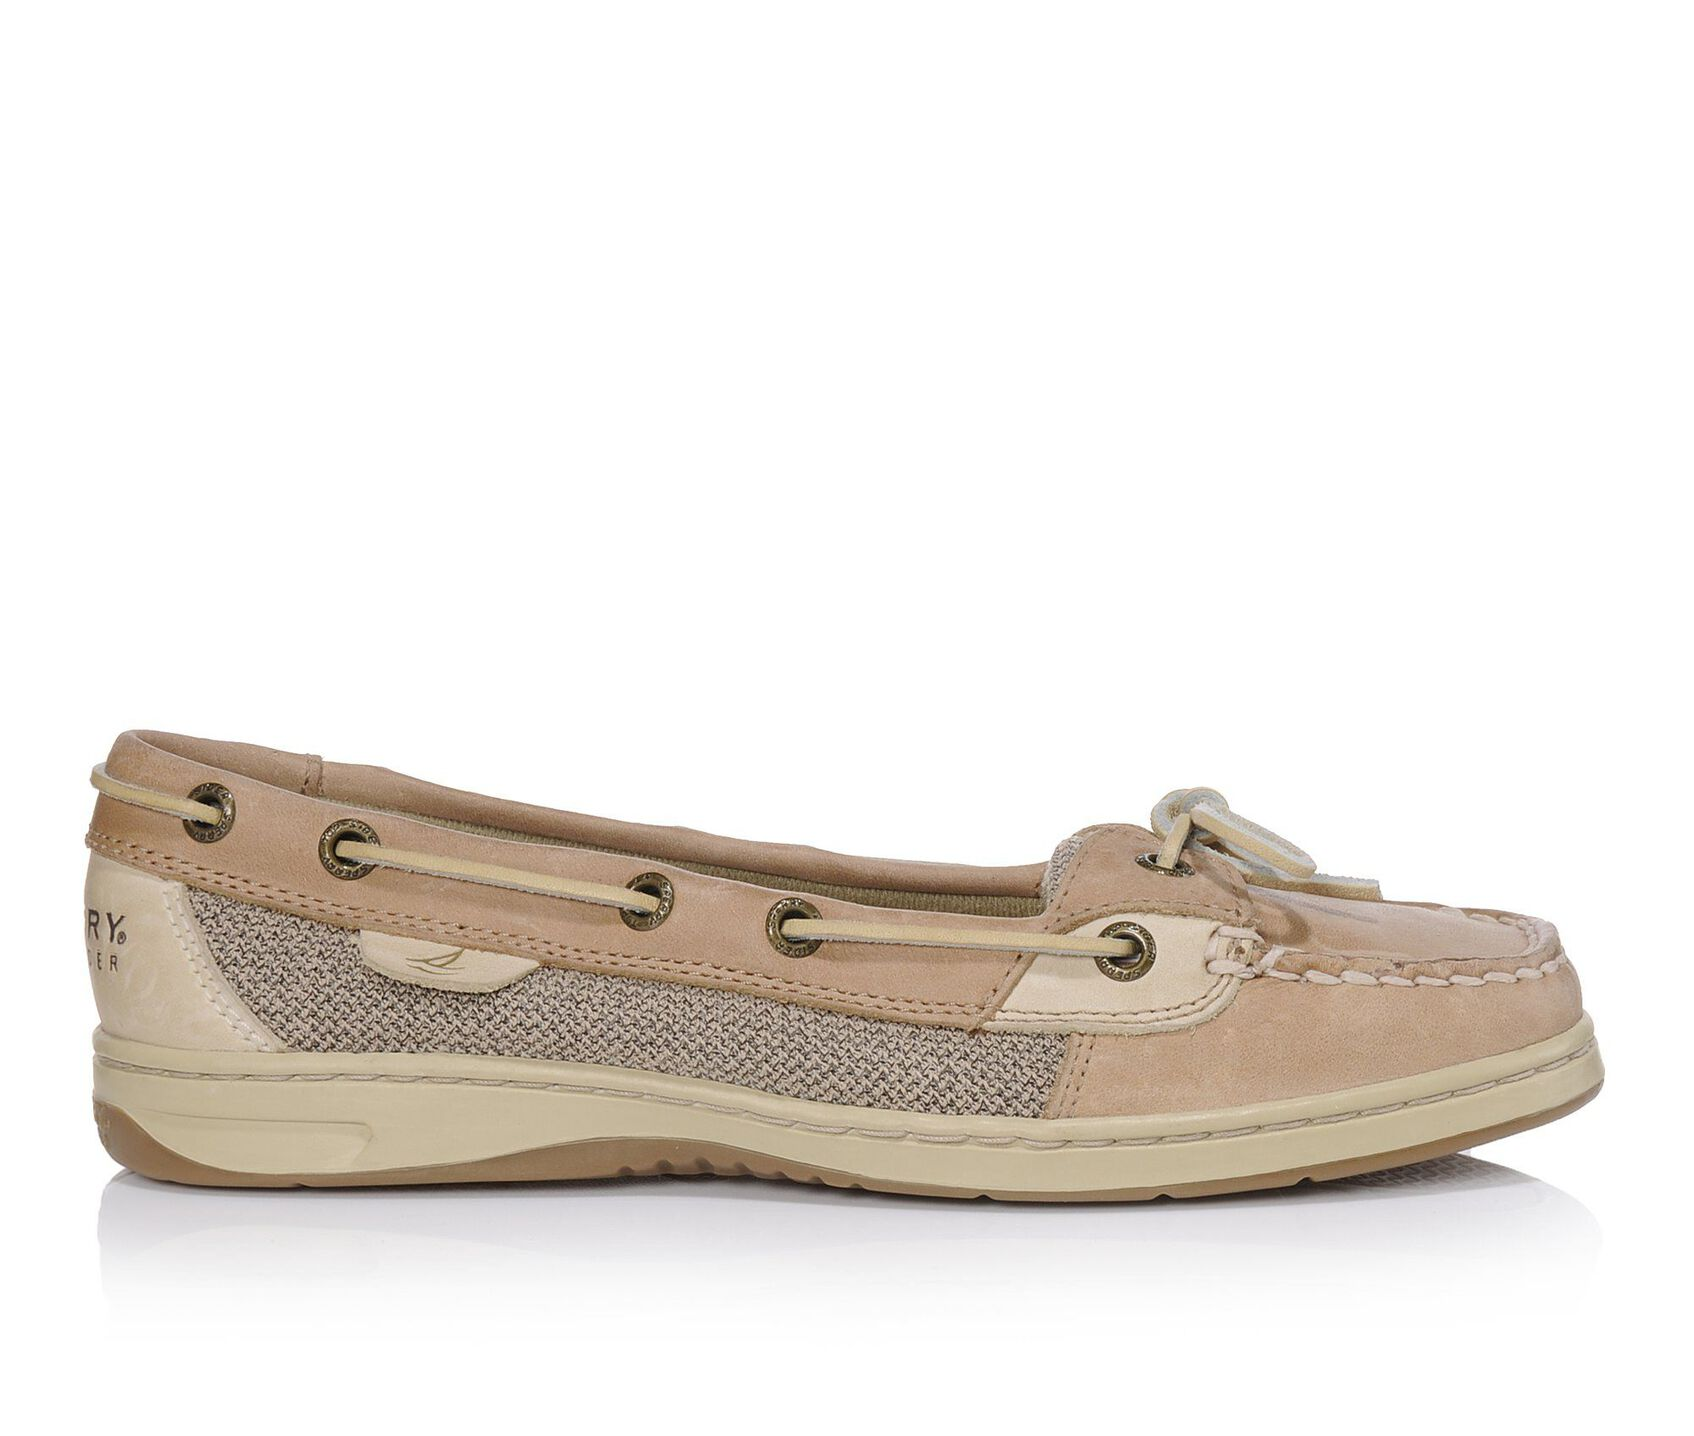 15a88a345d Women s Sperry Angelfish Boat Shoes